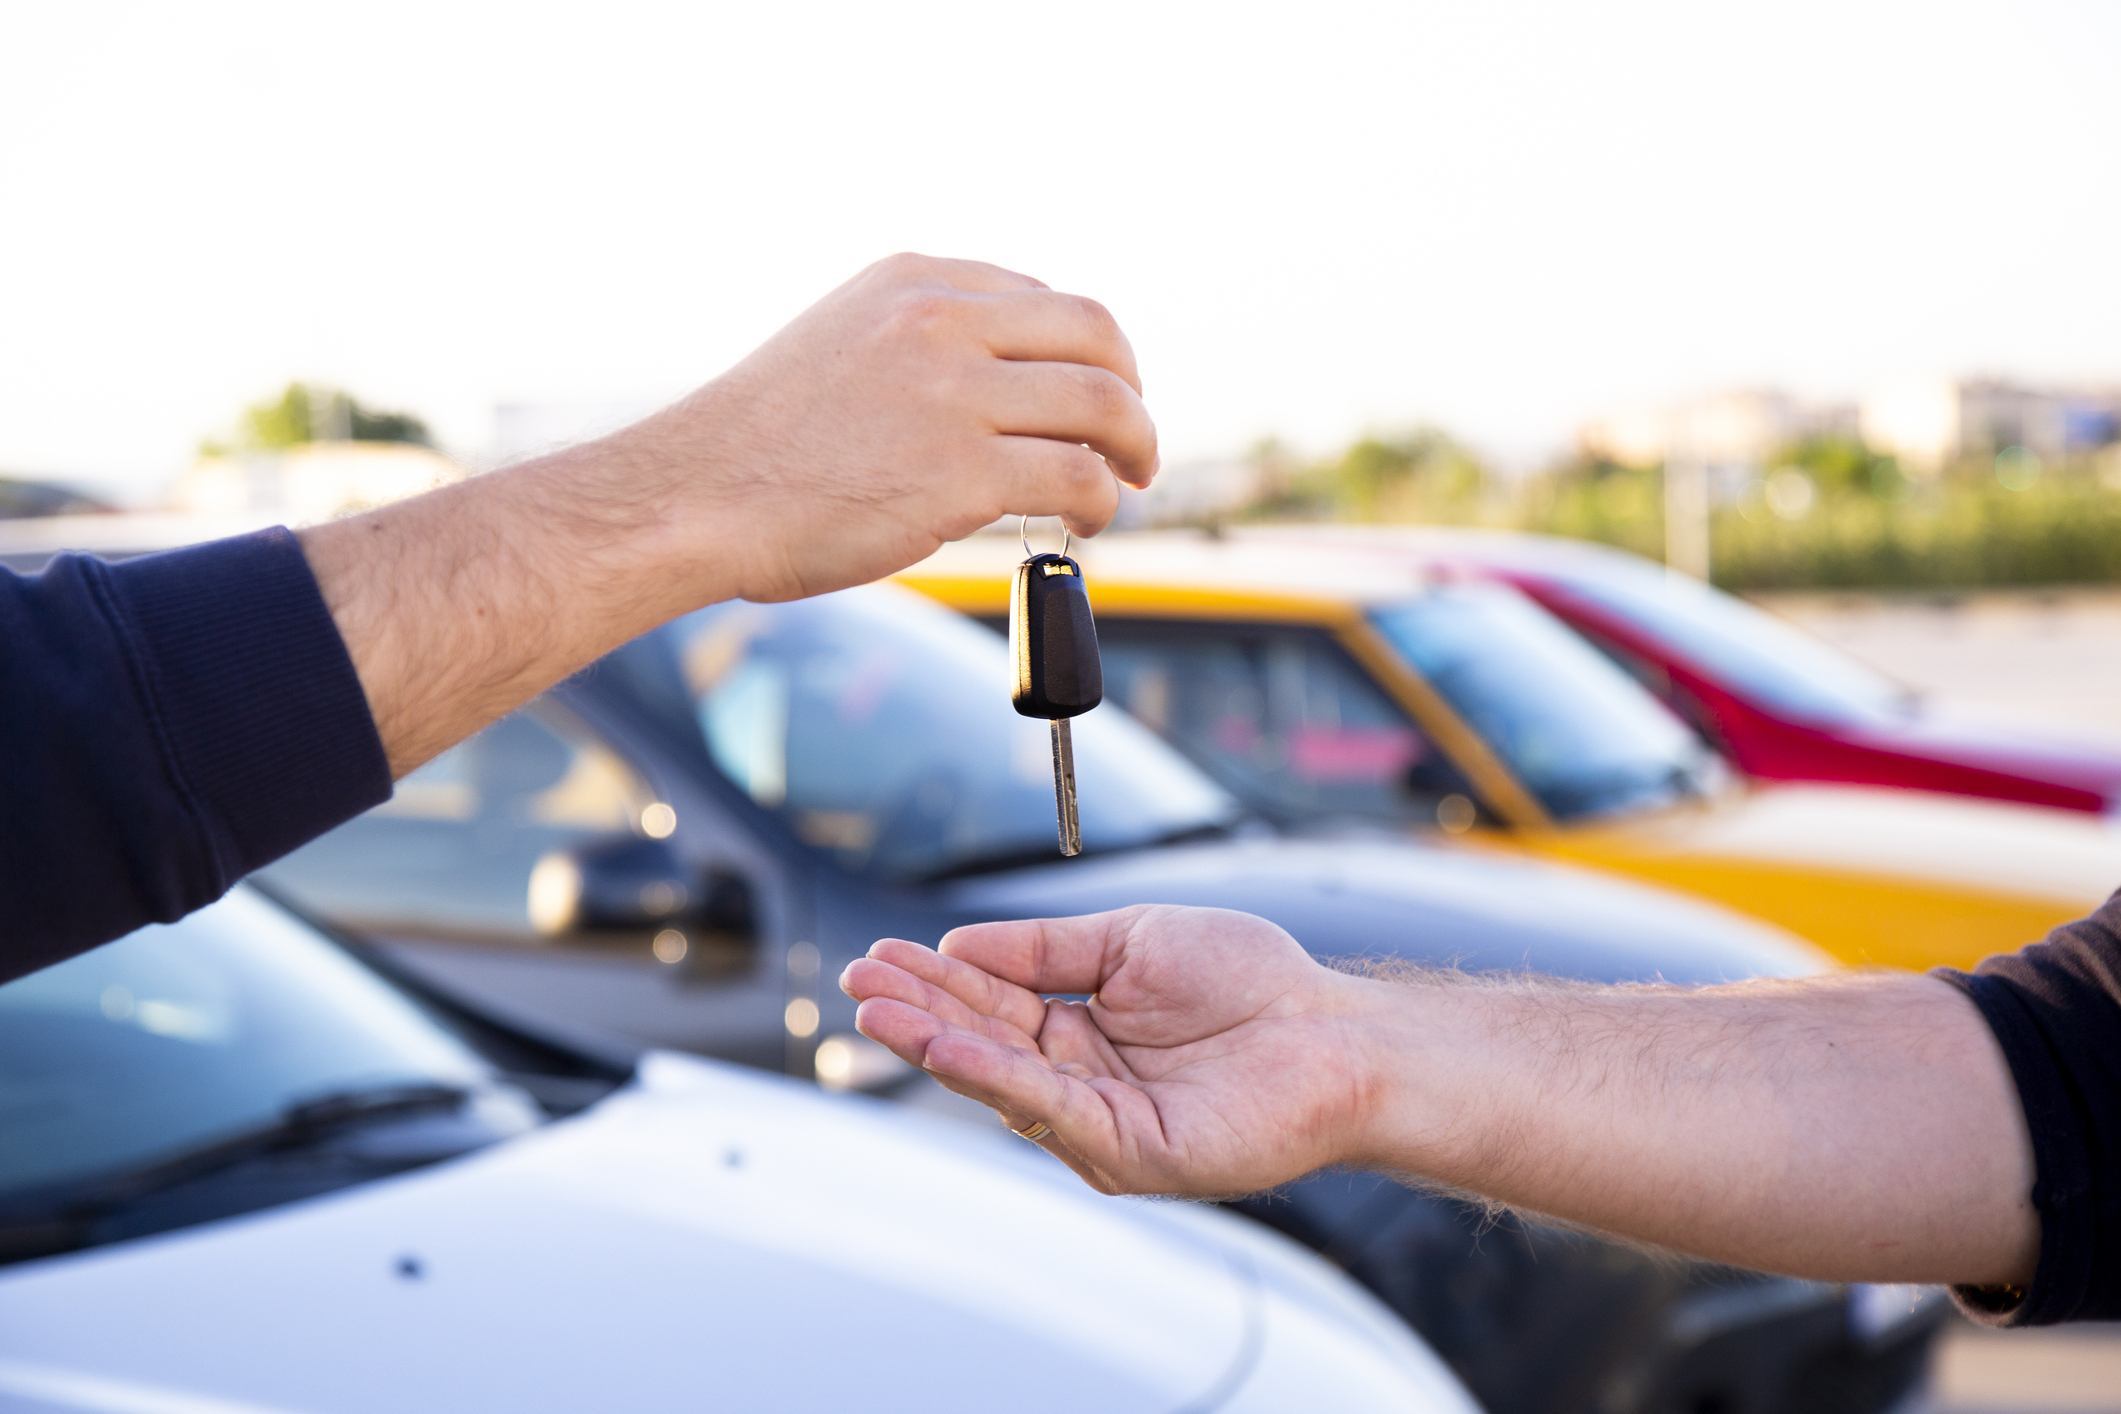 Car leasing comparison website Moneyshake has partnered with Motorway to help you sell your car easily